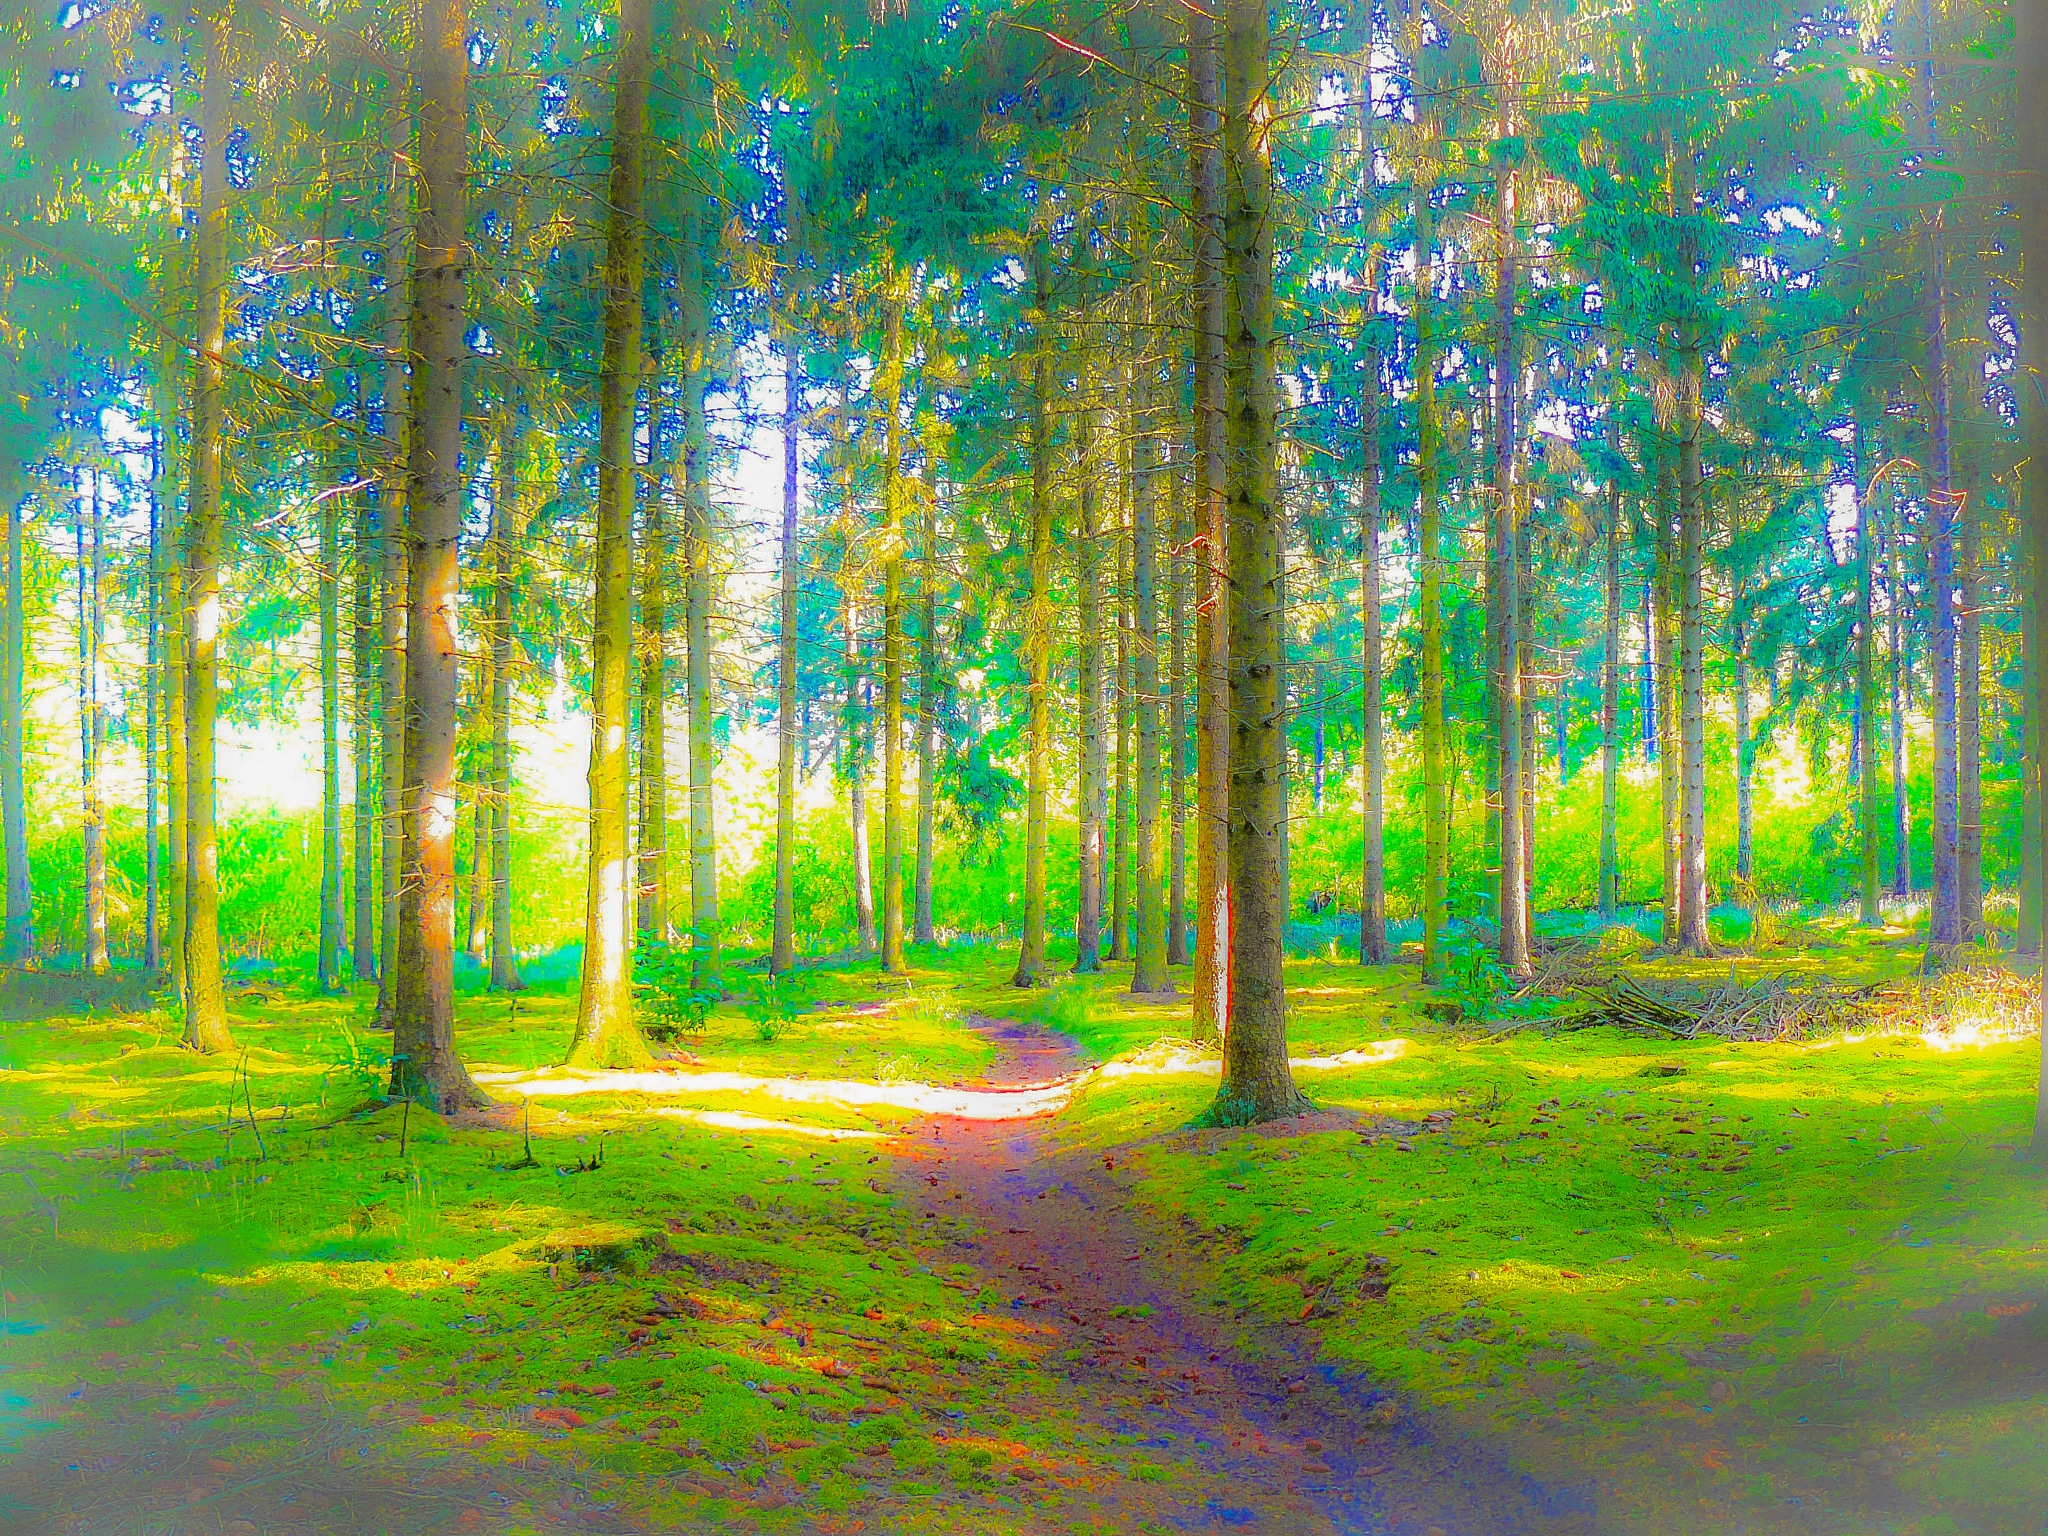 Woods in Limburg by Paul Geutjes